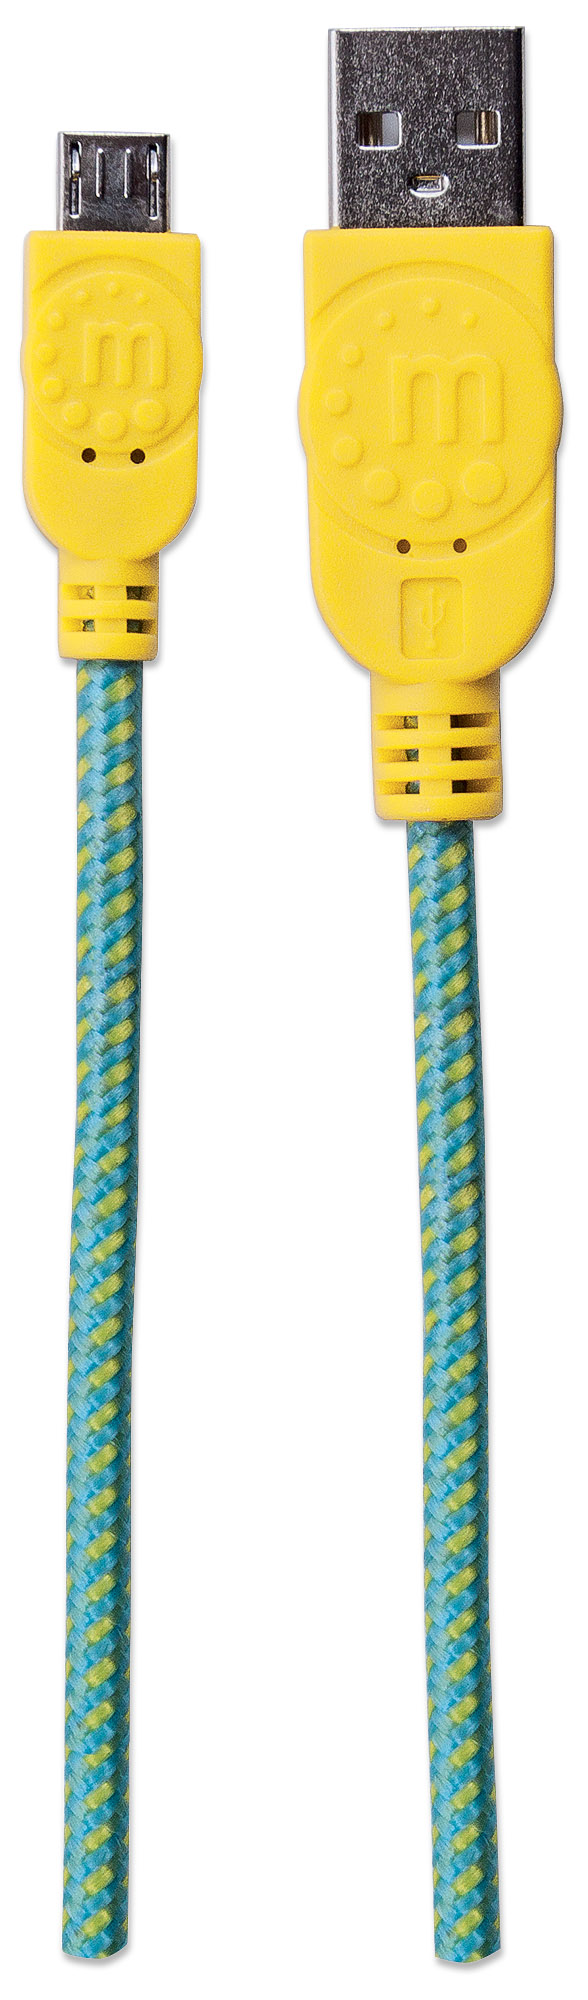 Braided Hi-Speed USB Micro-B Device Cable